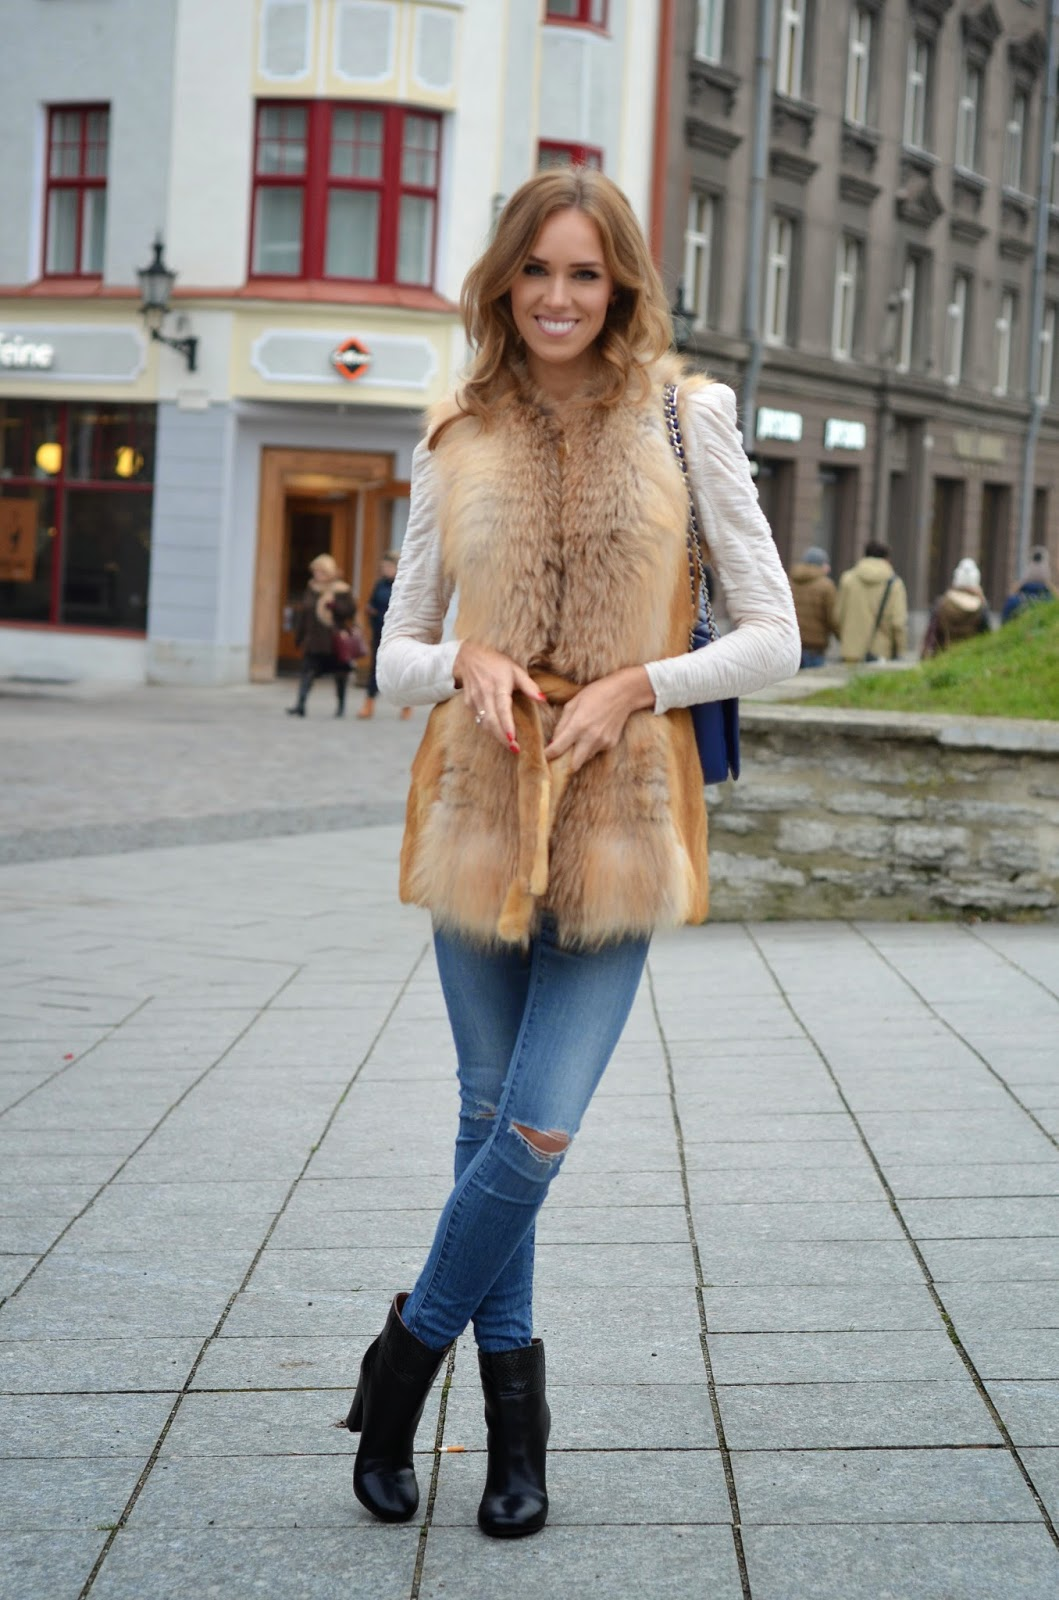 red-fox-fur-jeans-ankle-boots-outfit kristjaana mere